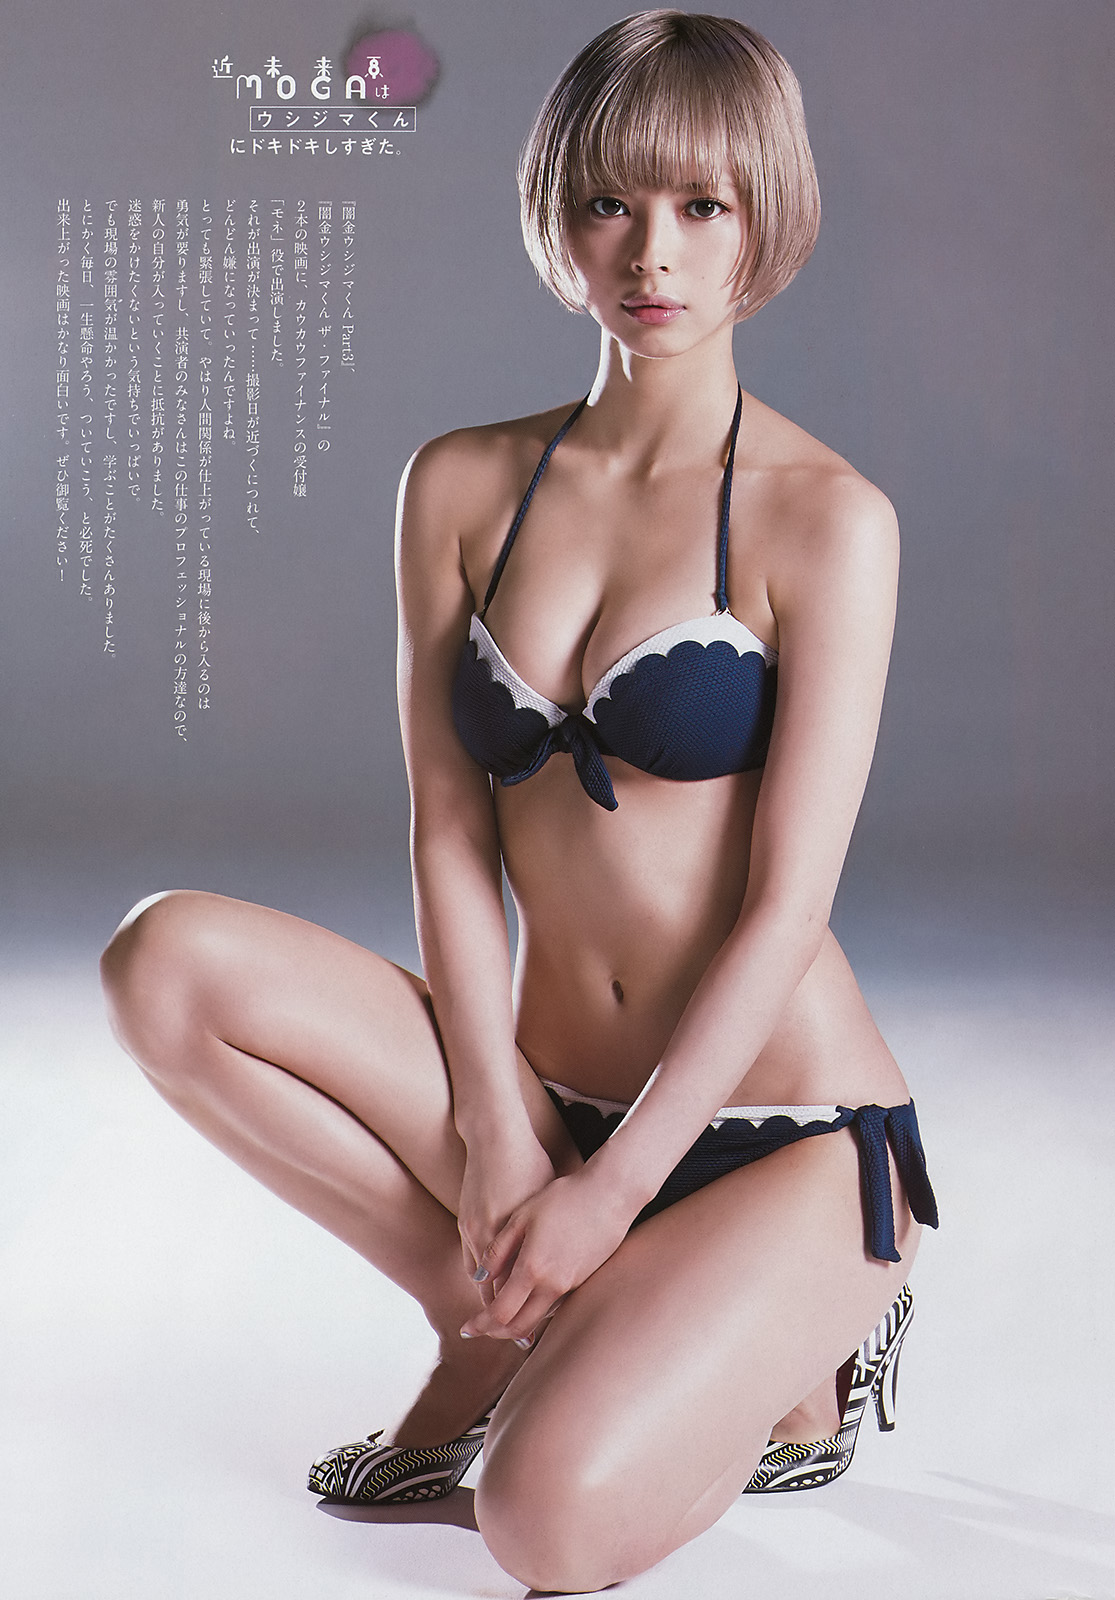 Moga Mogami 最上もが Dempagumi.inc, Big Comic Spirits 2016.10.31 No.47 (週刊スピリッツ 2016年47号)